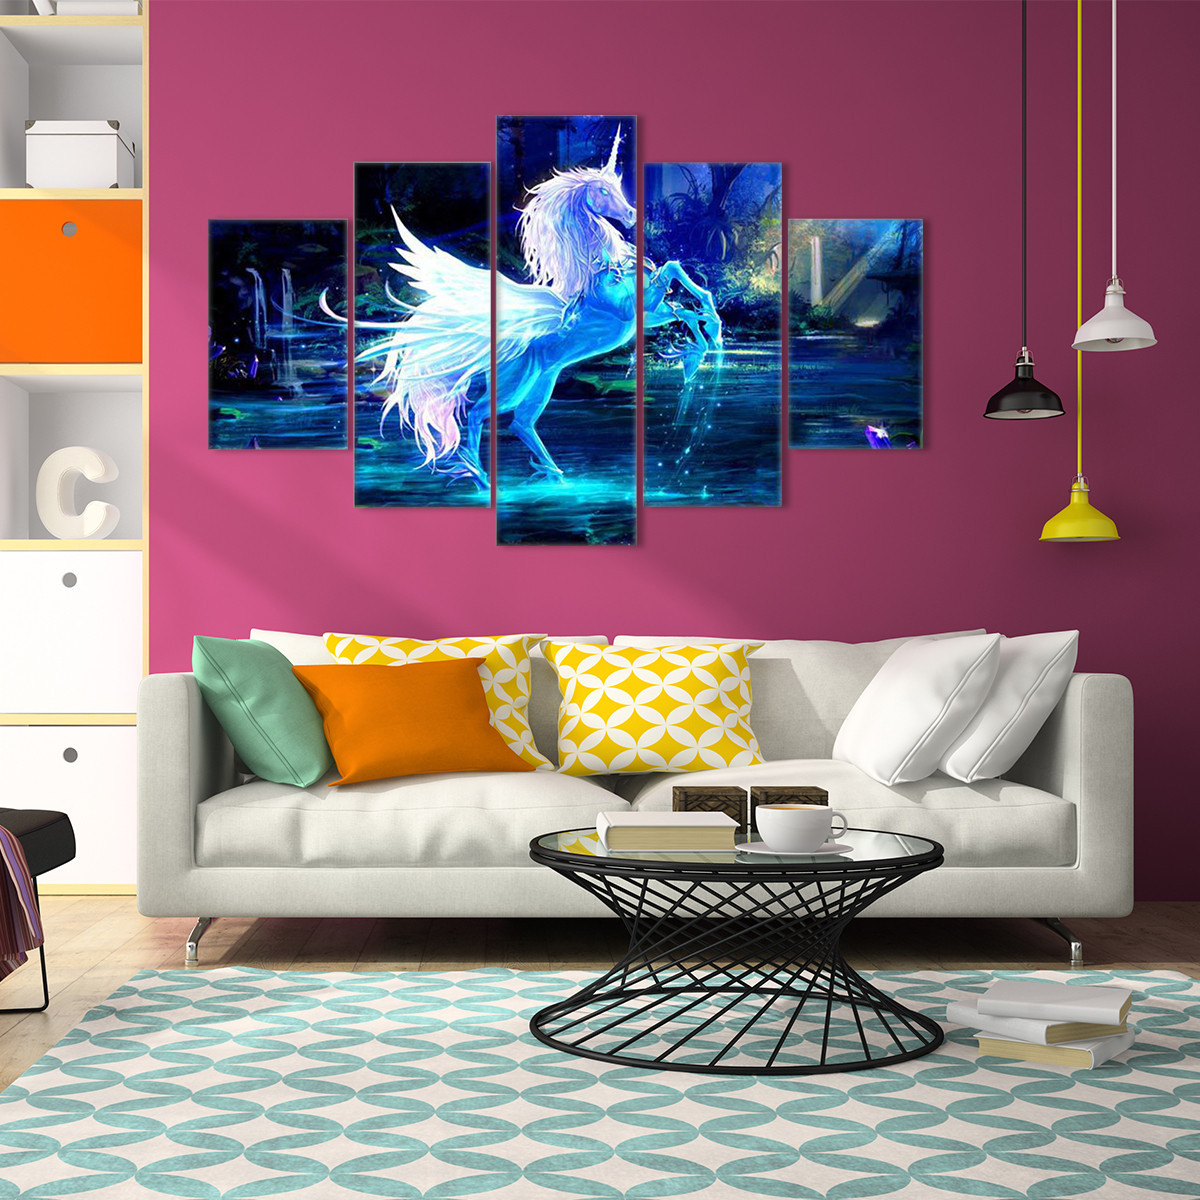 5Pcs Unicorn Abstract Flowers Canvas Print Painting Picture Wall Art Home Decor Paper Art